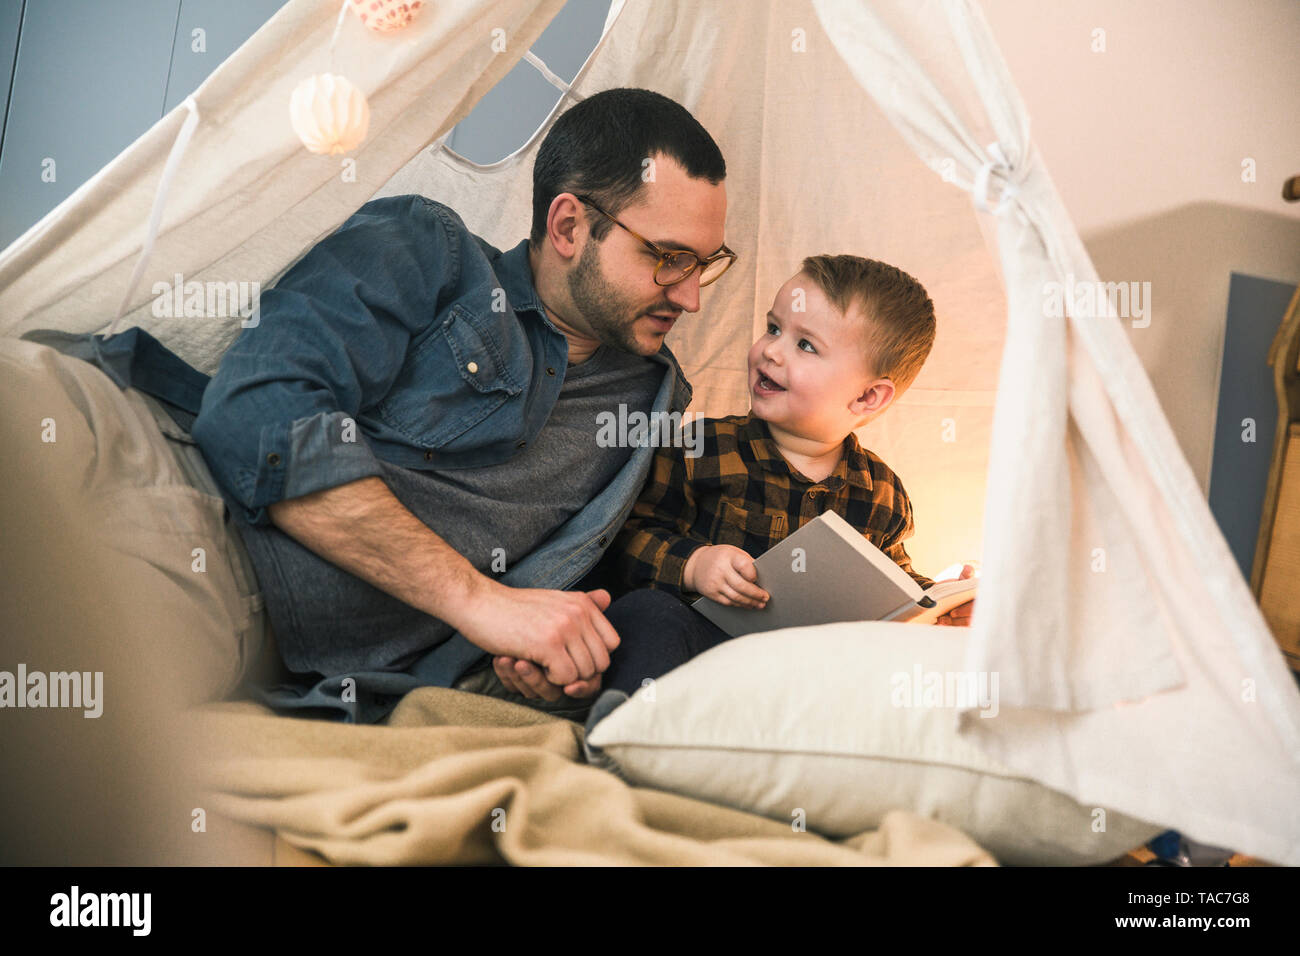 Father and son reading a book together in tent at home - Stock Image